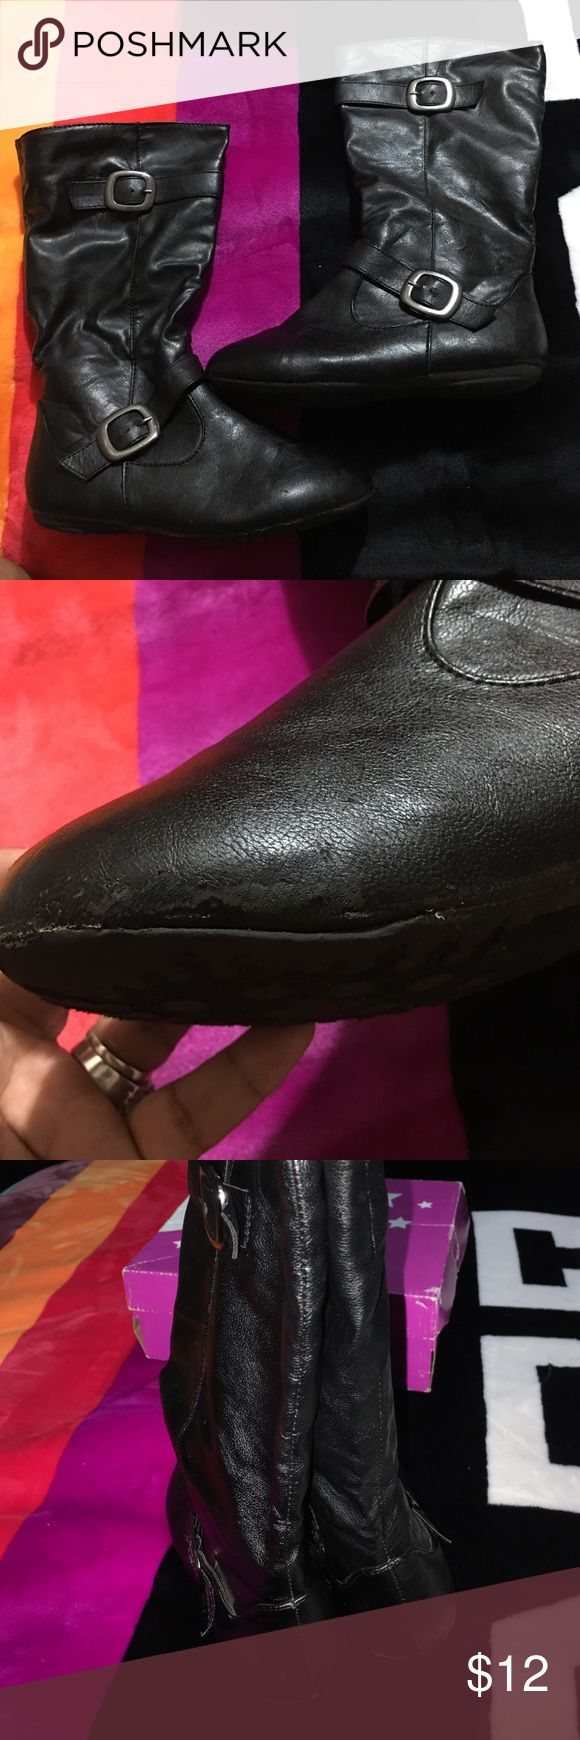 Tall Black Boots Girls Has light scuffing see pic comes with box #No lowballs  #No Holds  #No Separating Of Item  #No trying on items   #If items are listed it's still available don't ask  #No rude comments=BLOCK  # Please don't ask have I shipped I ship same day or next business day   #I do not control shipping speed or delays please don't ask where your package is I know as much as you do  Items comes from a smoking home if that's a problem don't purchase, pet free home please ask…